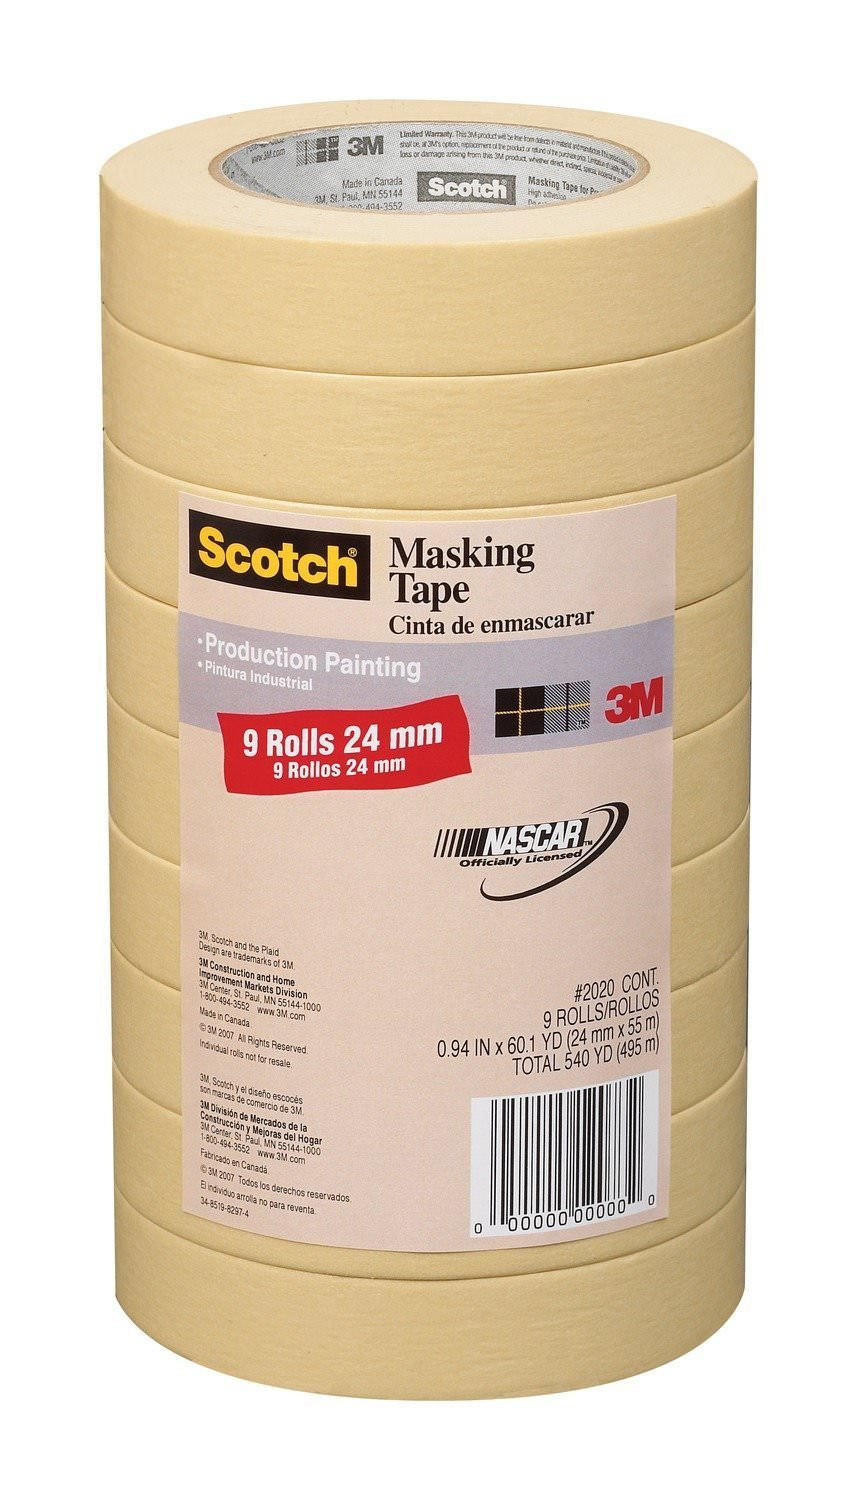 3M Scotch General Purpose Masking Tape 2020-24A-CP, 0.94-Inch by 60.1-Yards, 5 Set (9 Rolls) by 3M (Image #1)